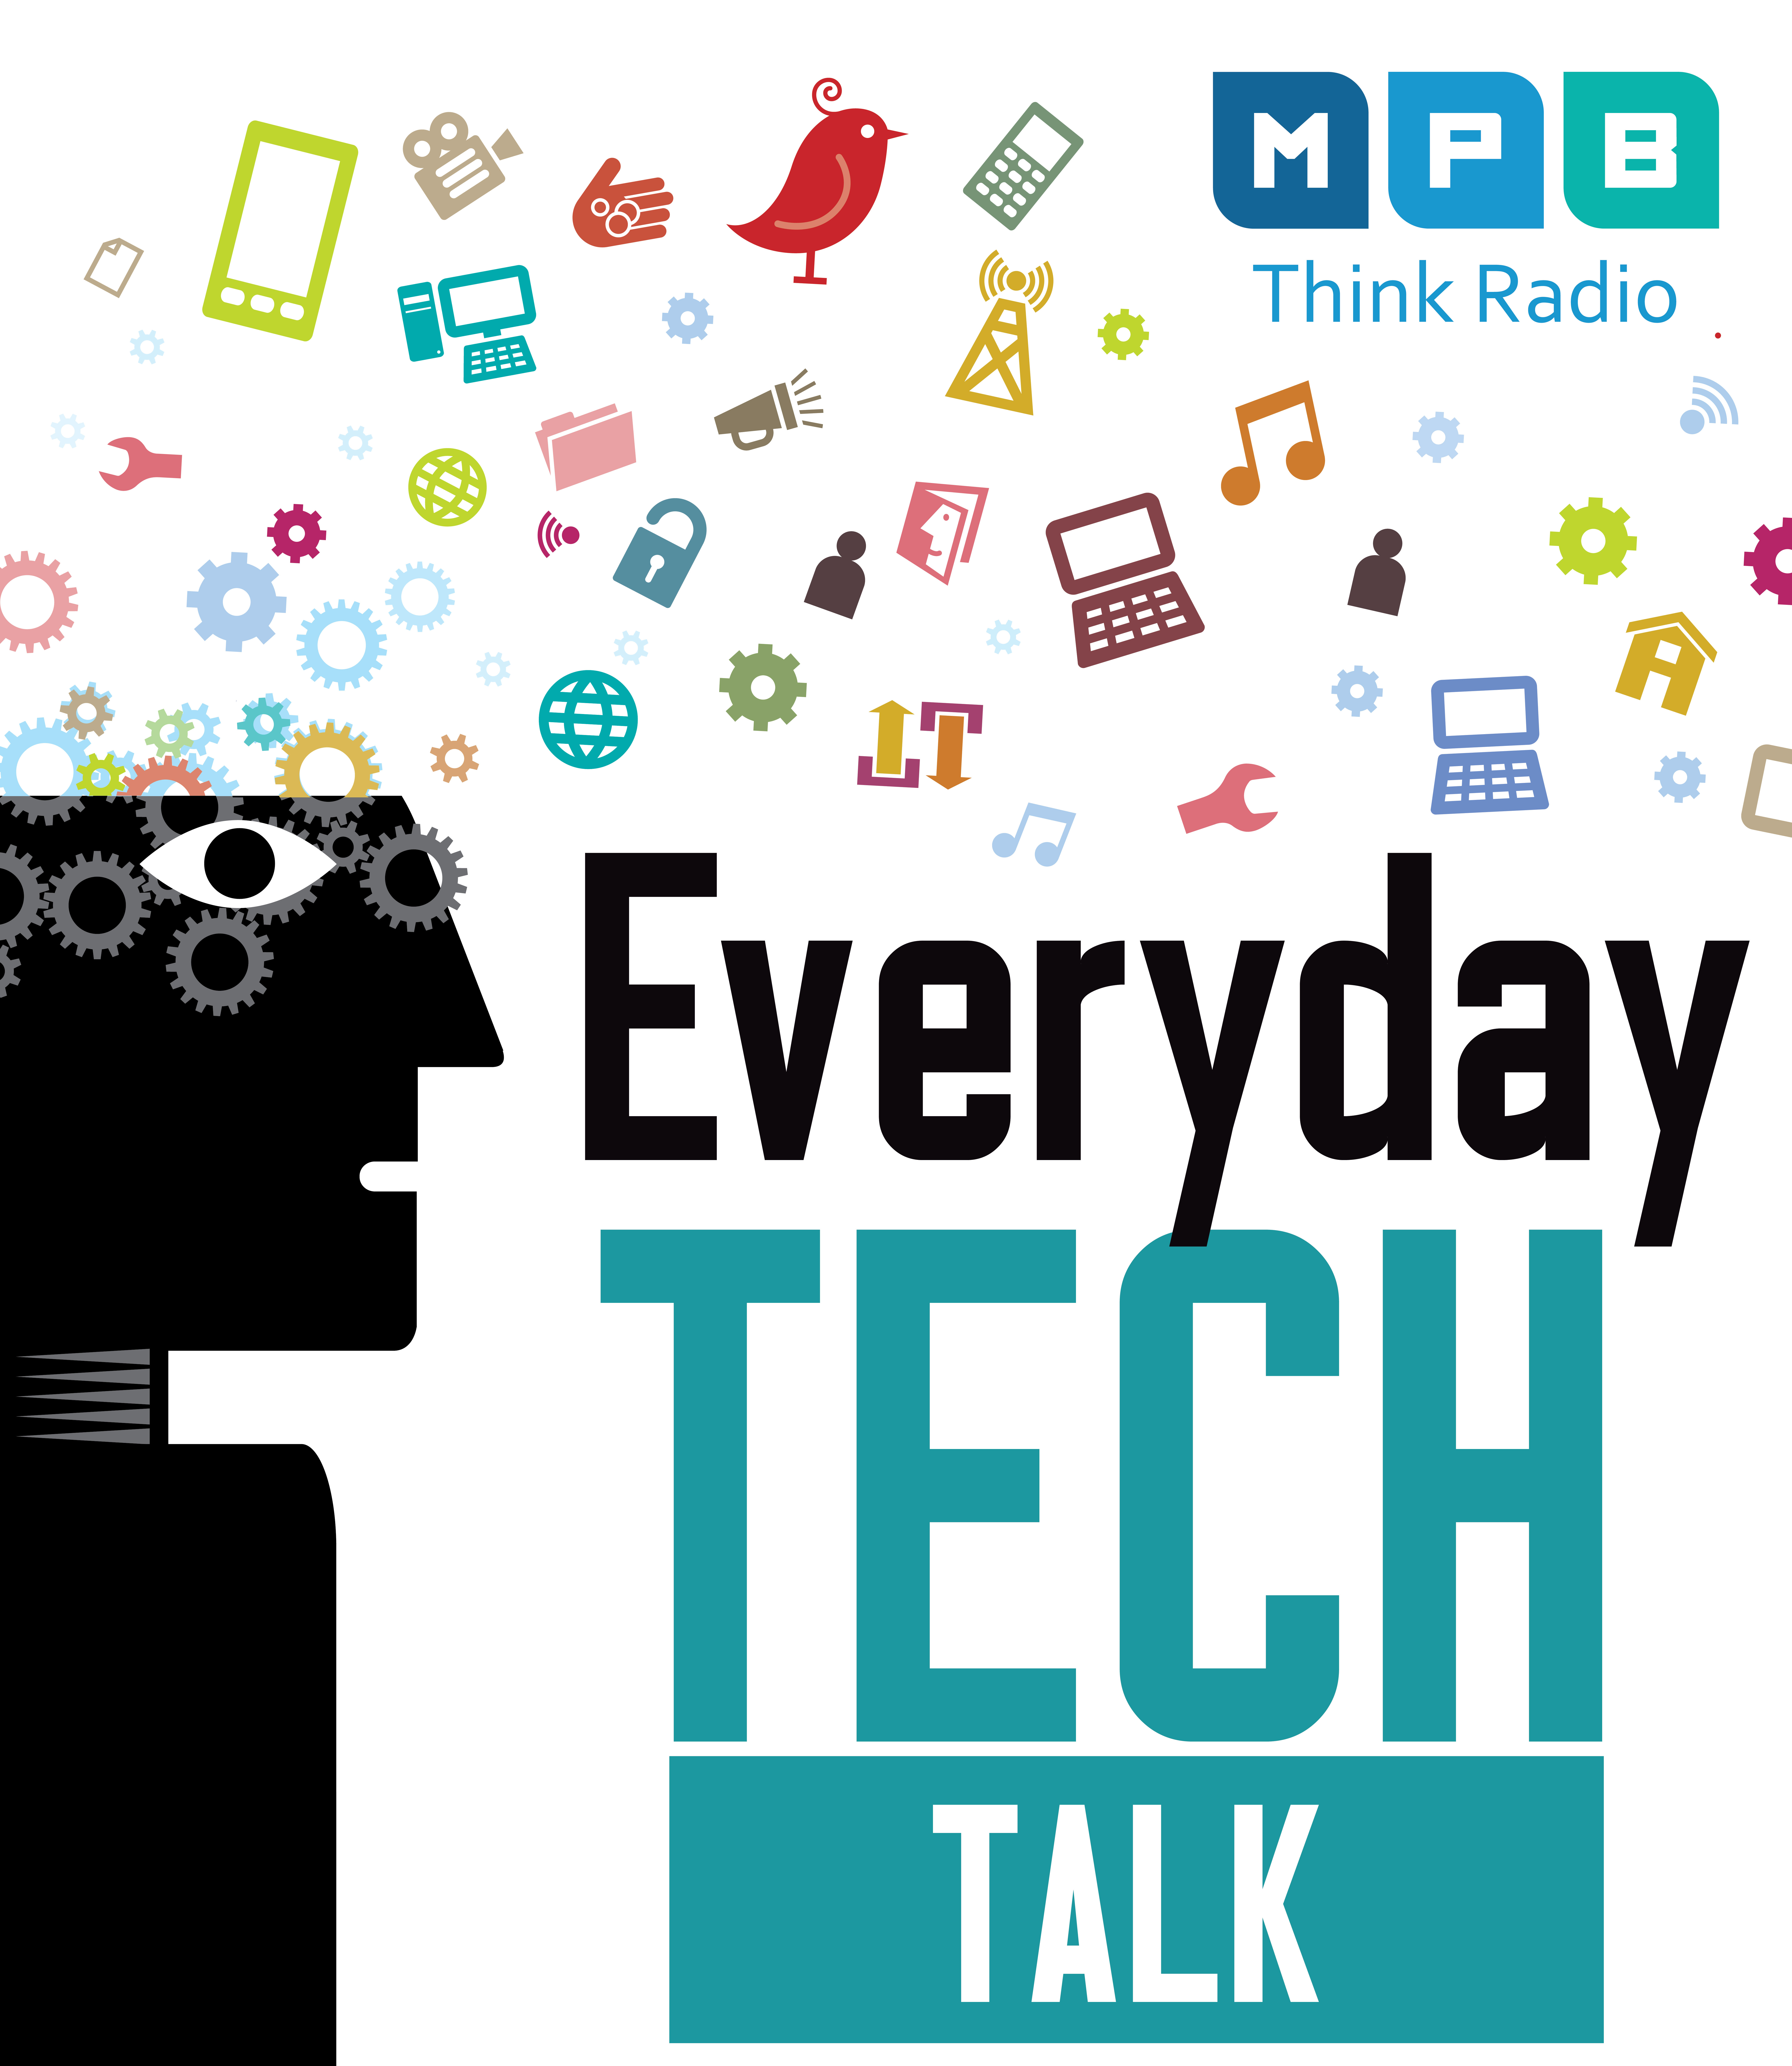 Caption: Everyday Tech Talk, Credit: Mississippi Public Broadcasting